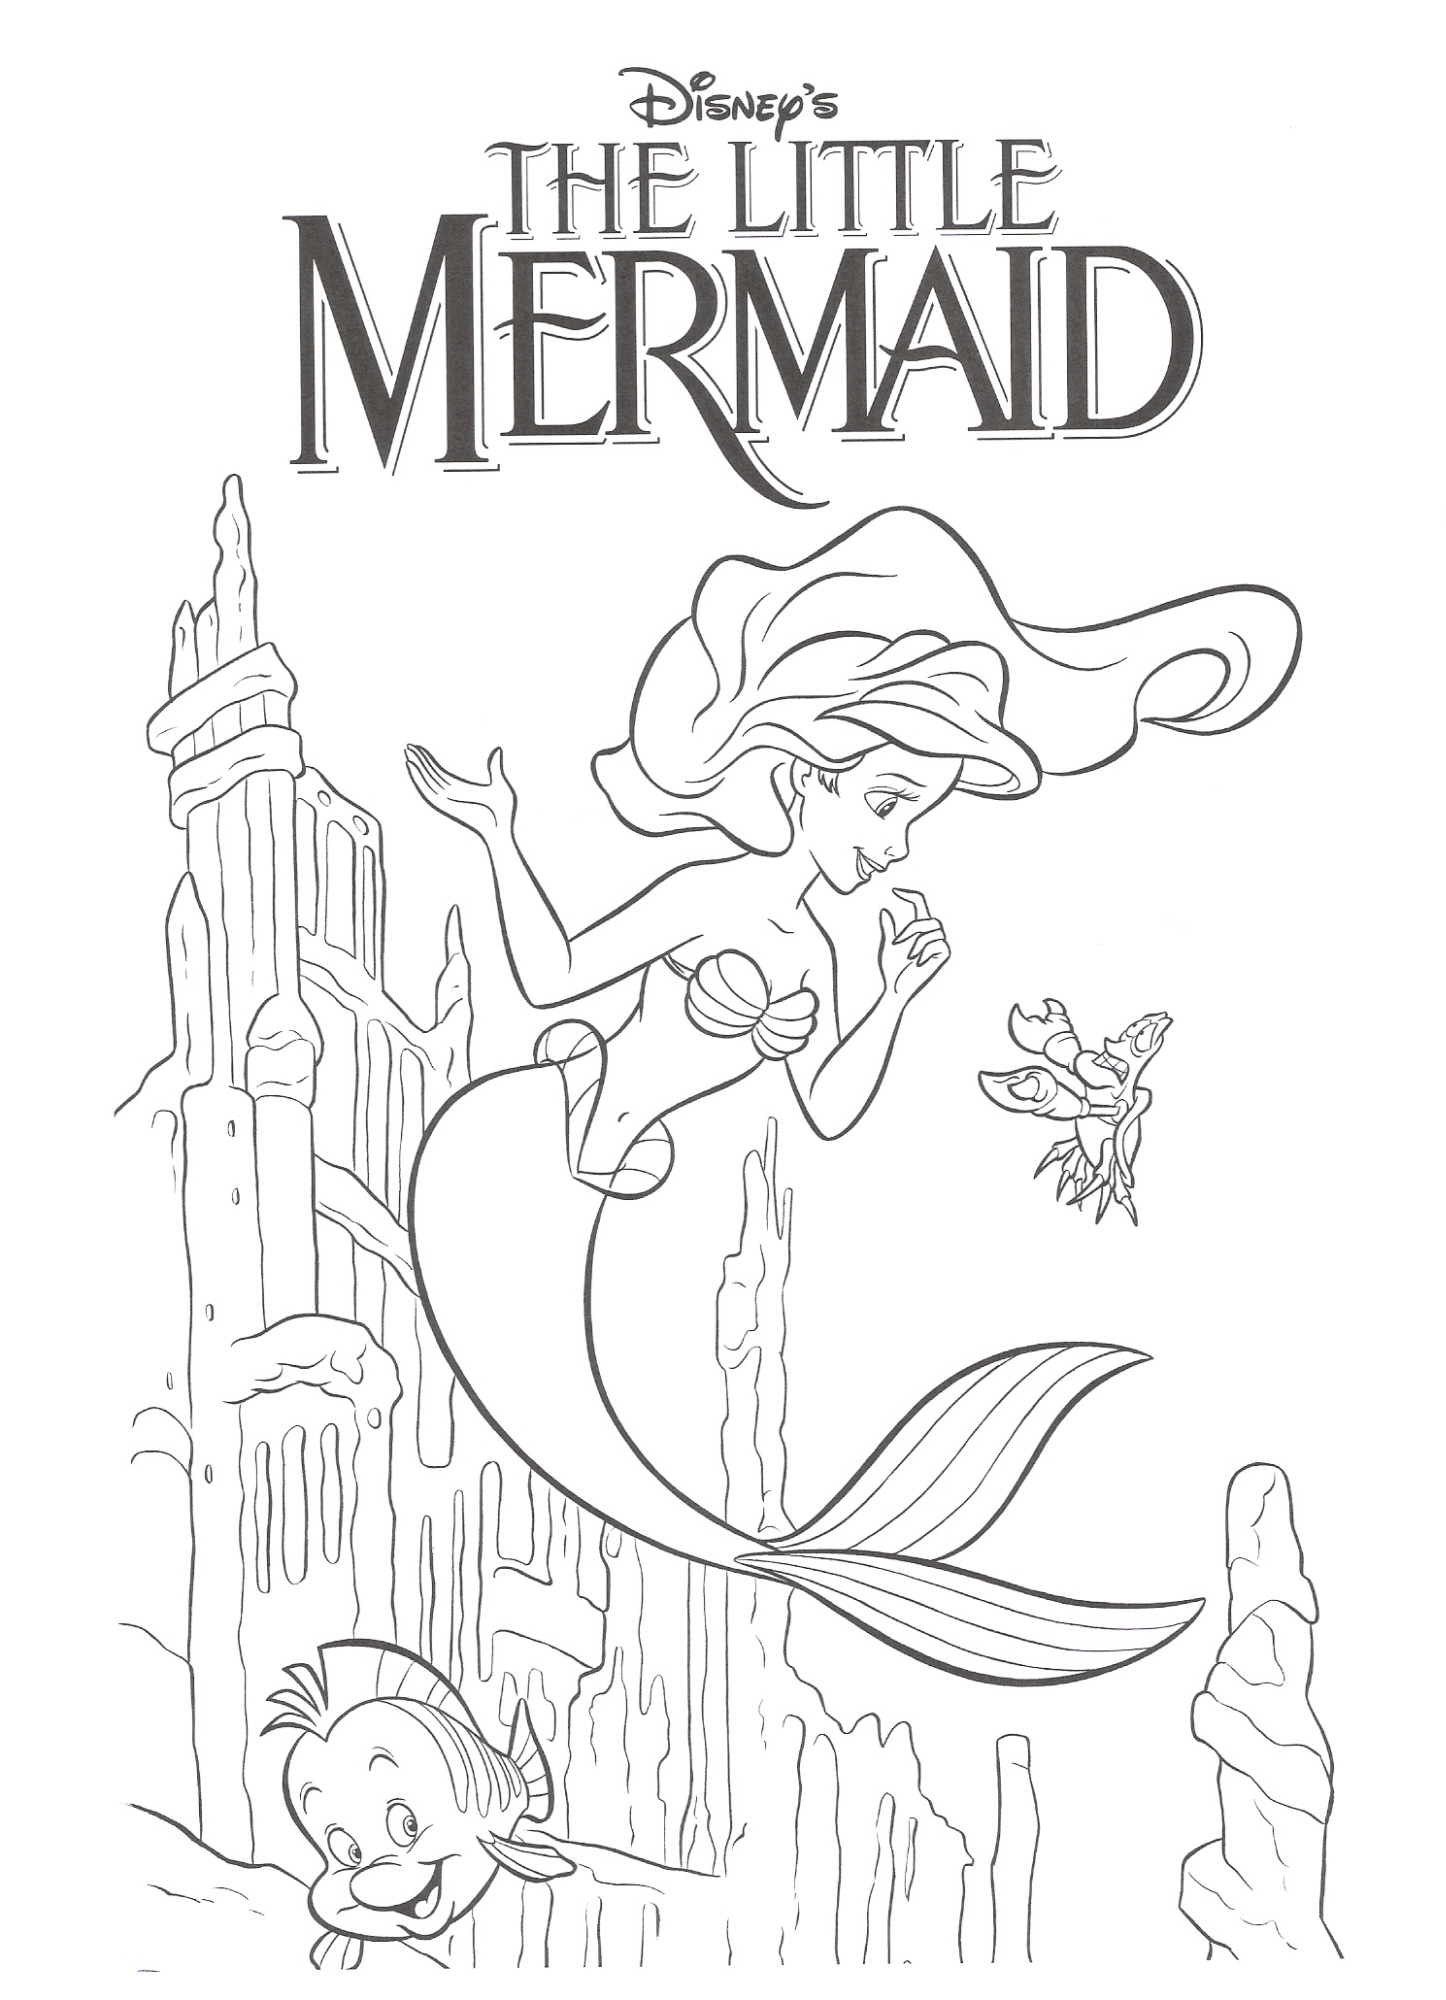 Download The Little Mermaid Coloring Pages9 Print